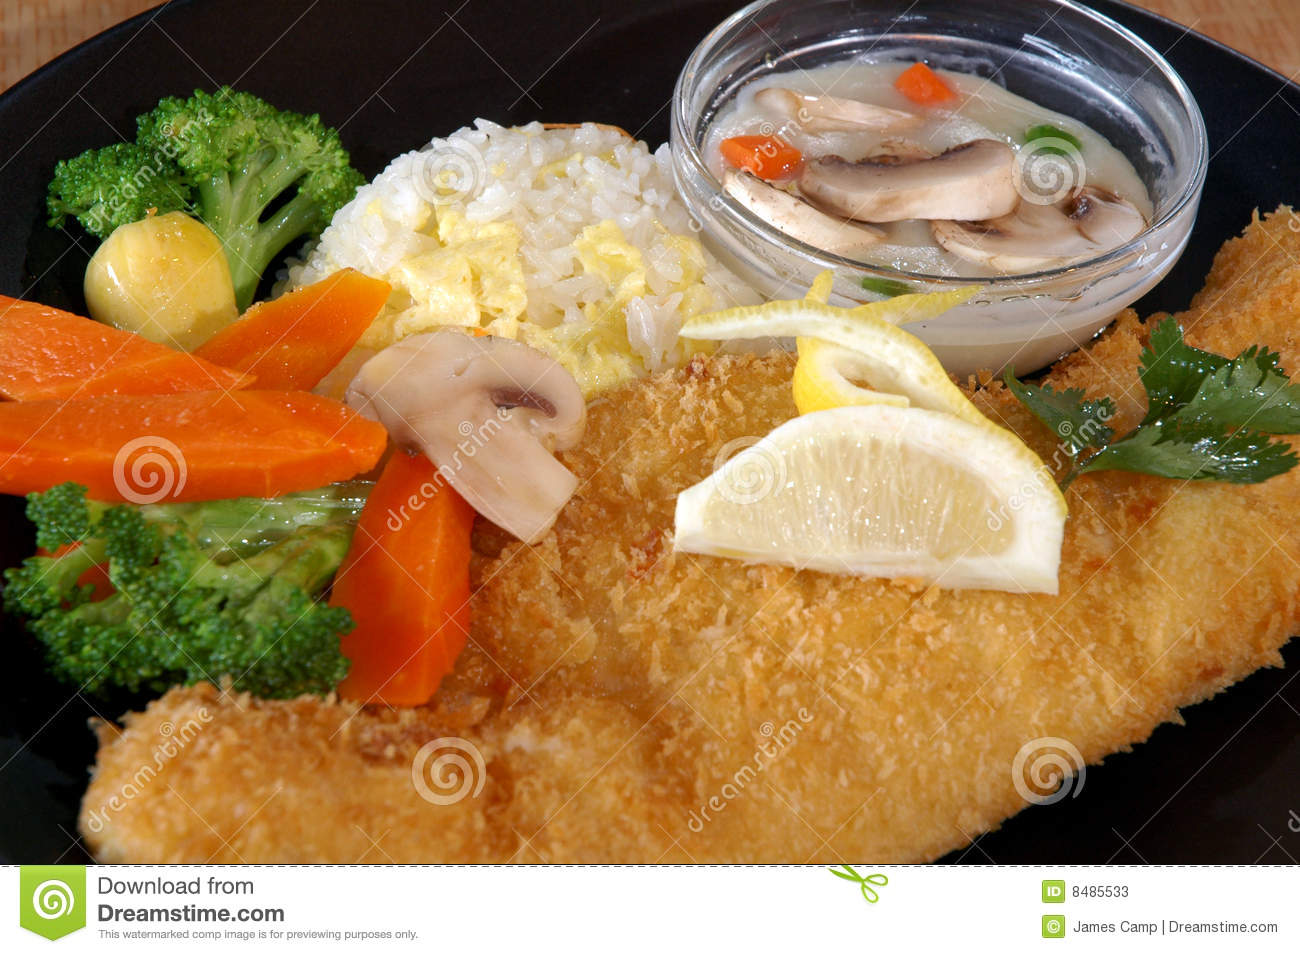 Fried fish with vegetables stock photos image 8485533 for What vegetables go with fish